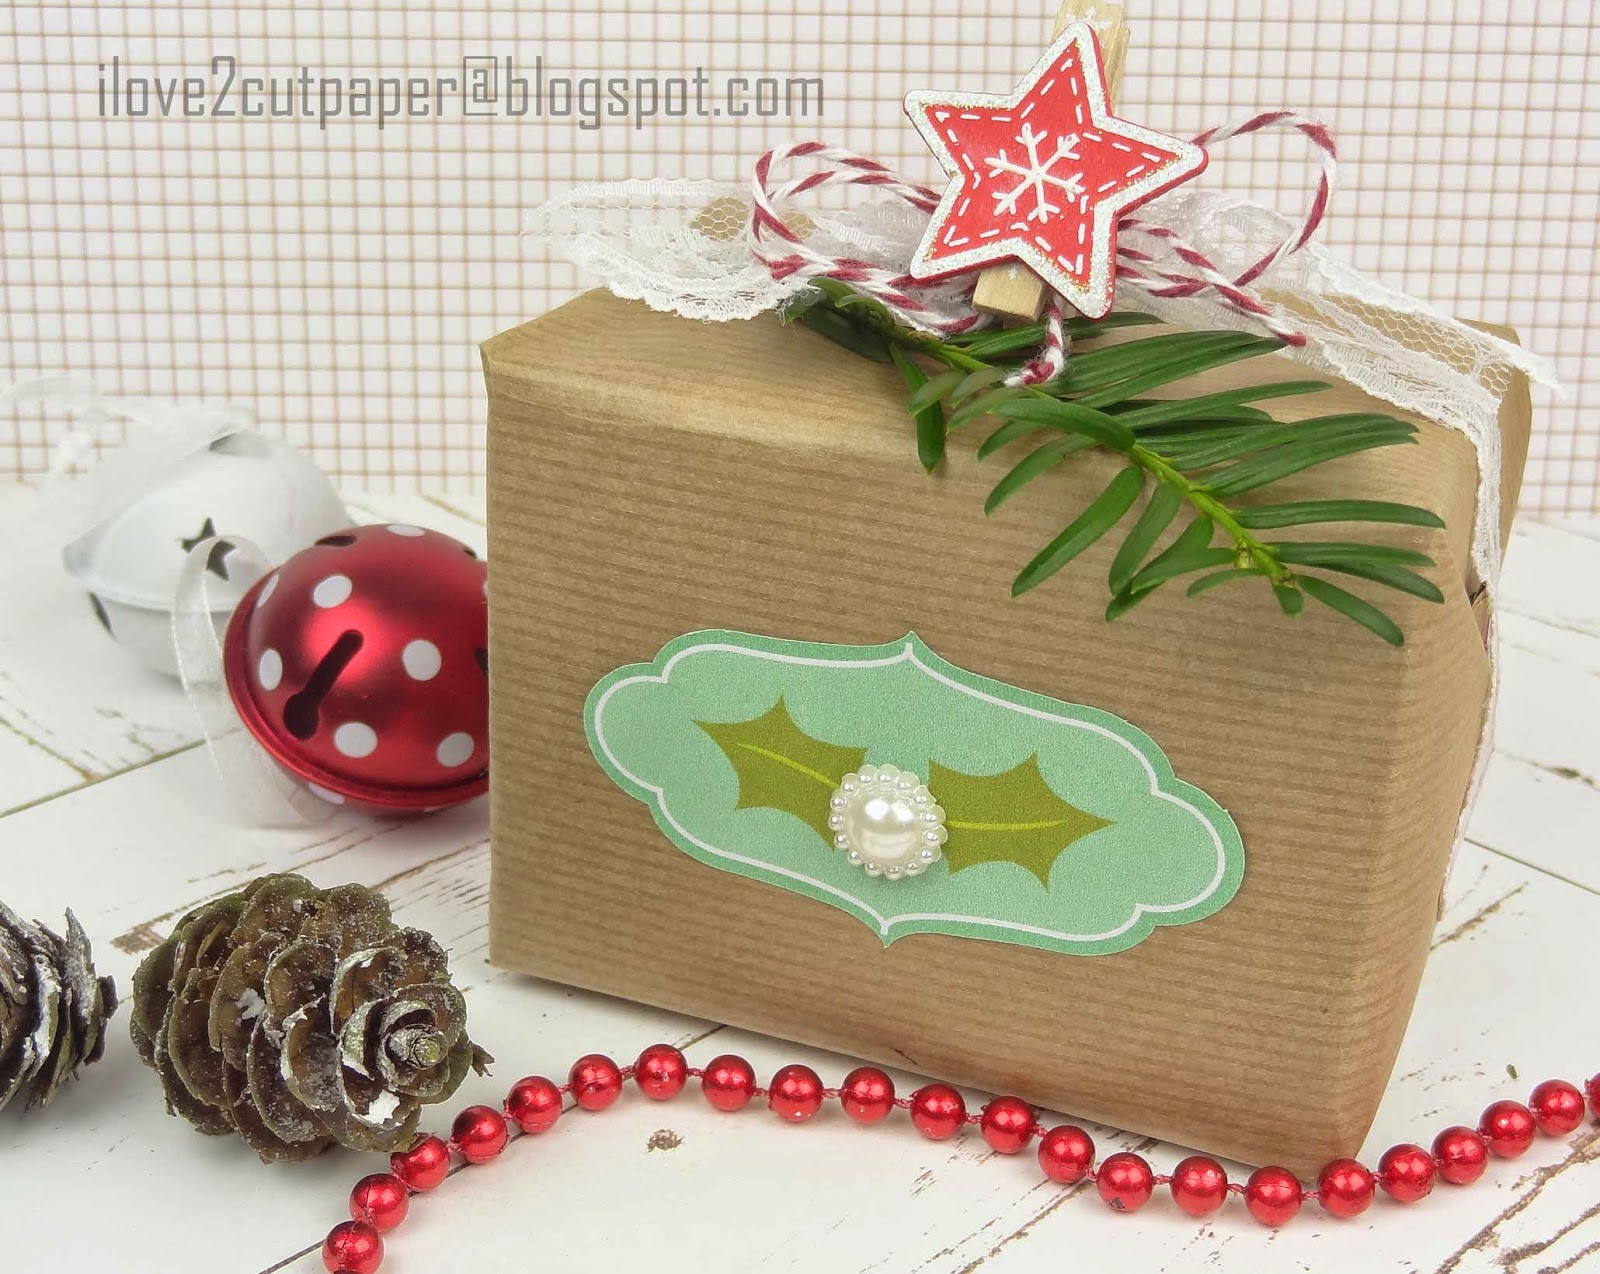 Gift Wrapping - Print and Cut